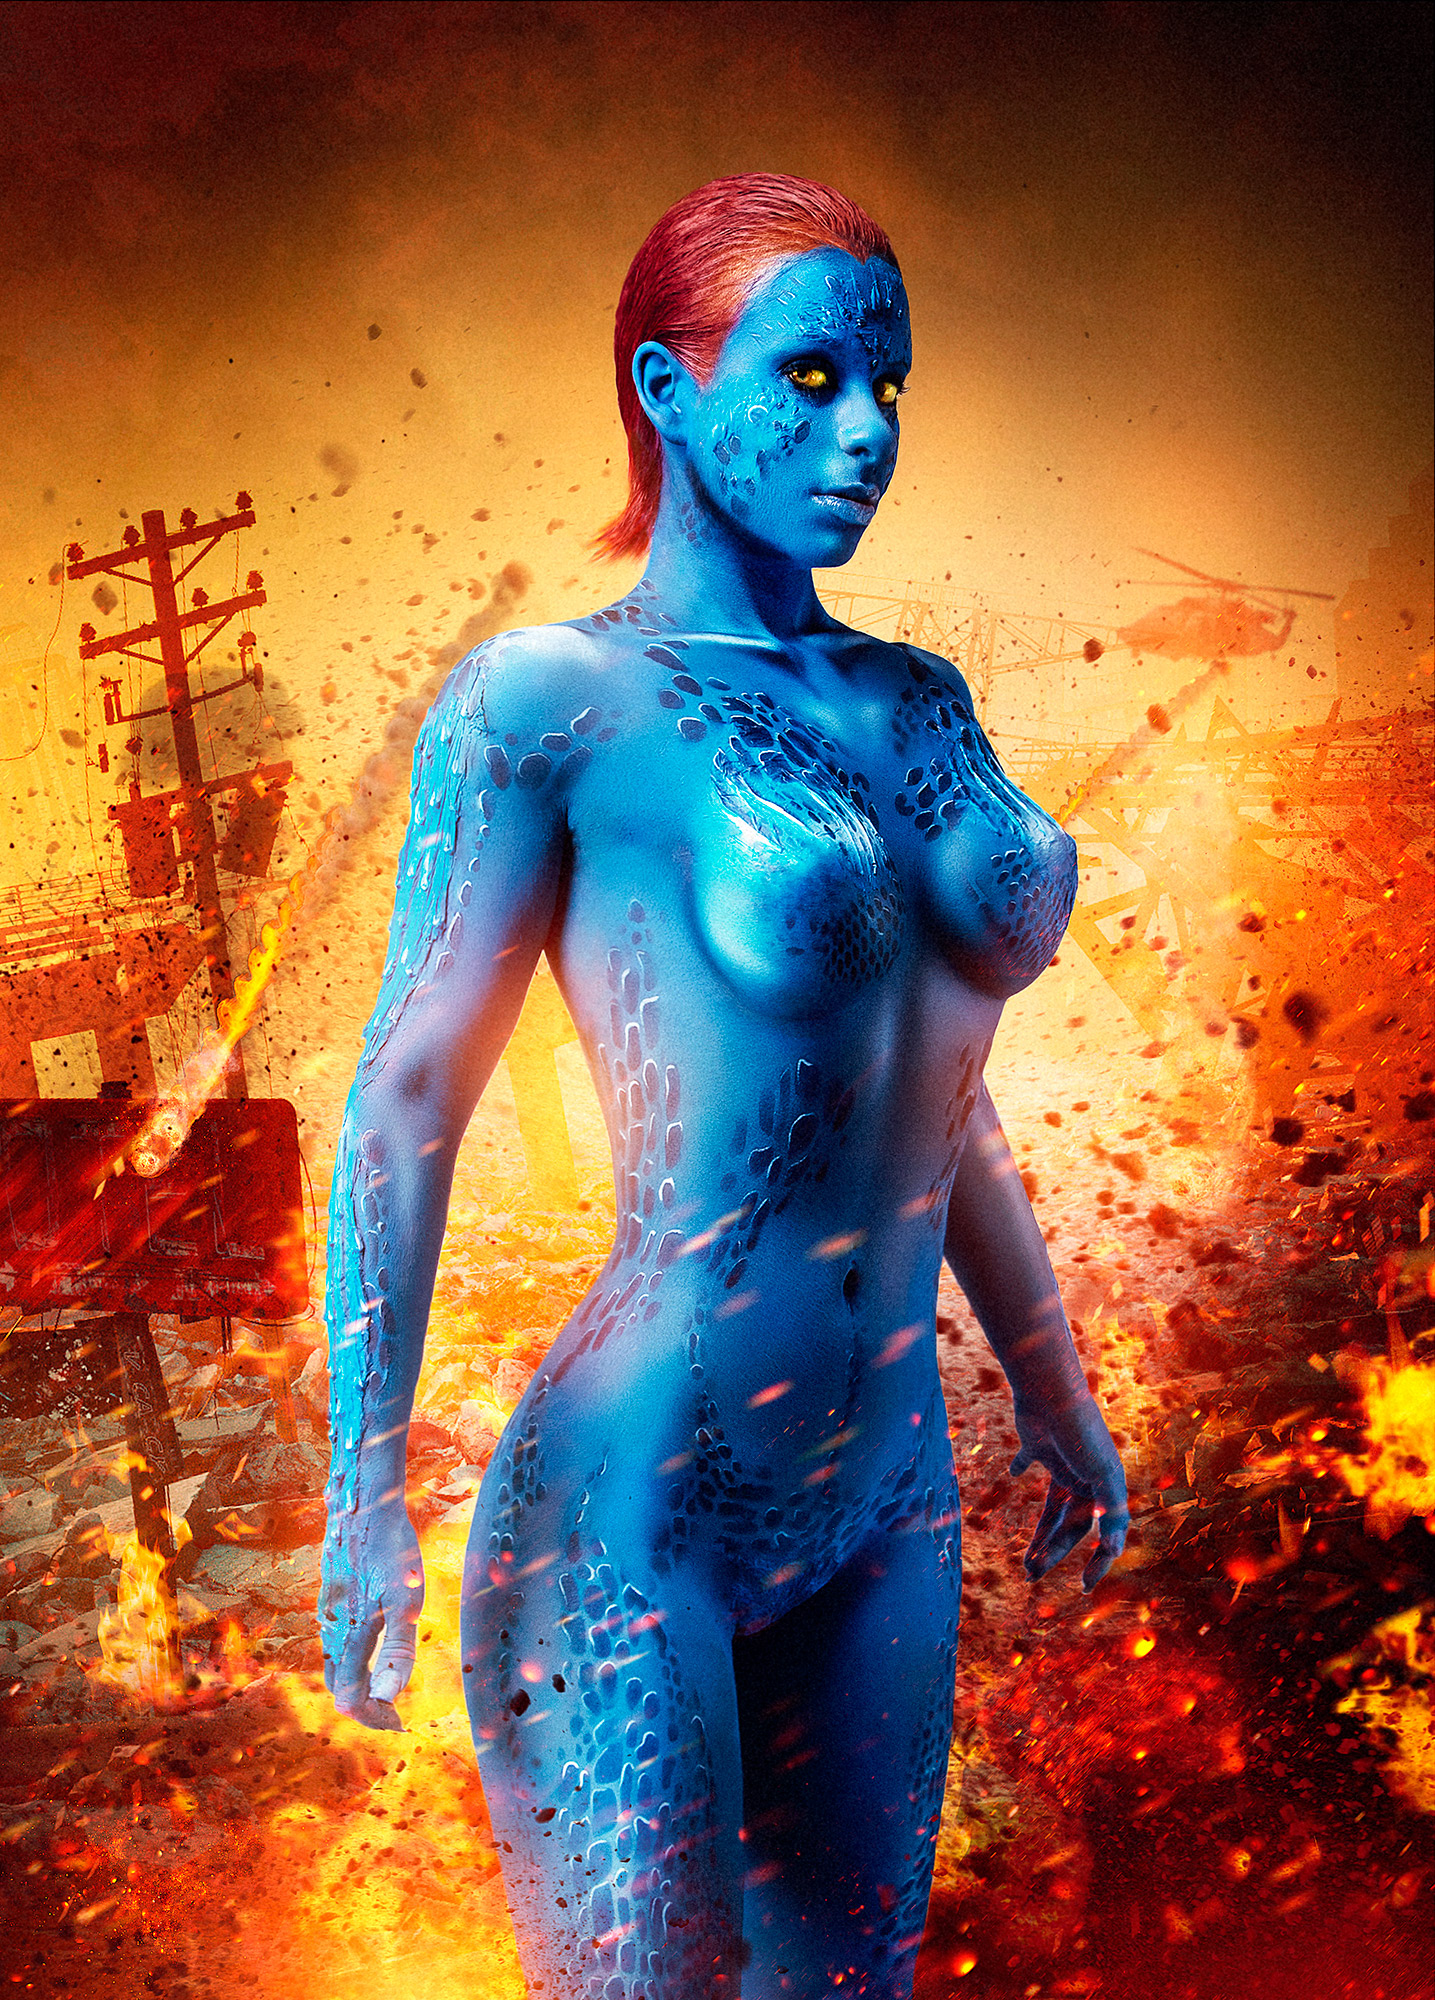 Mystique X-men Movie poster cosplay airbrush bodypainting